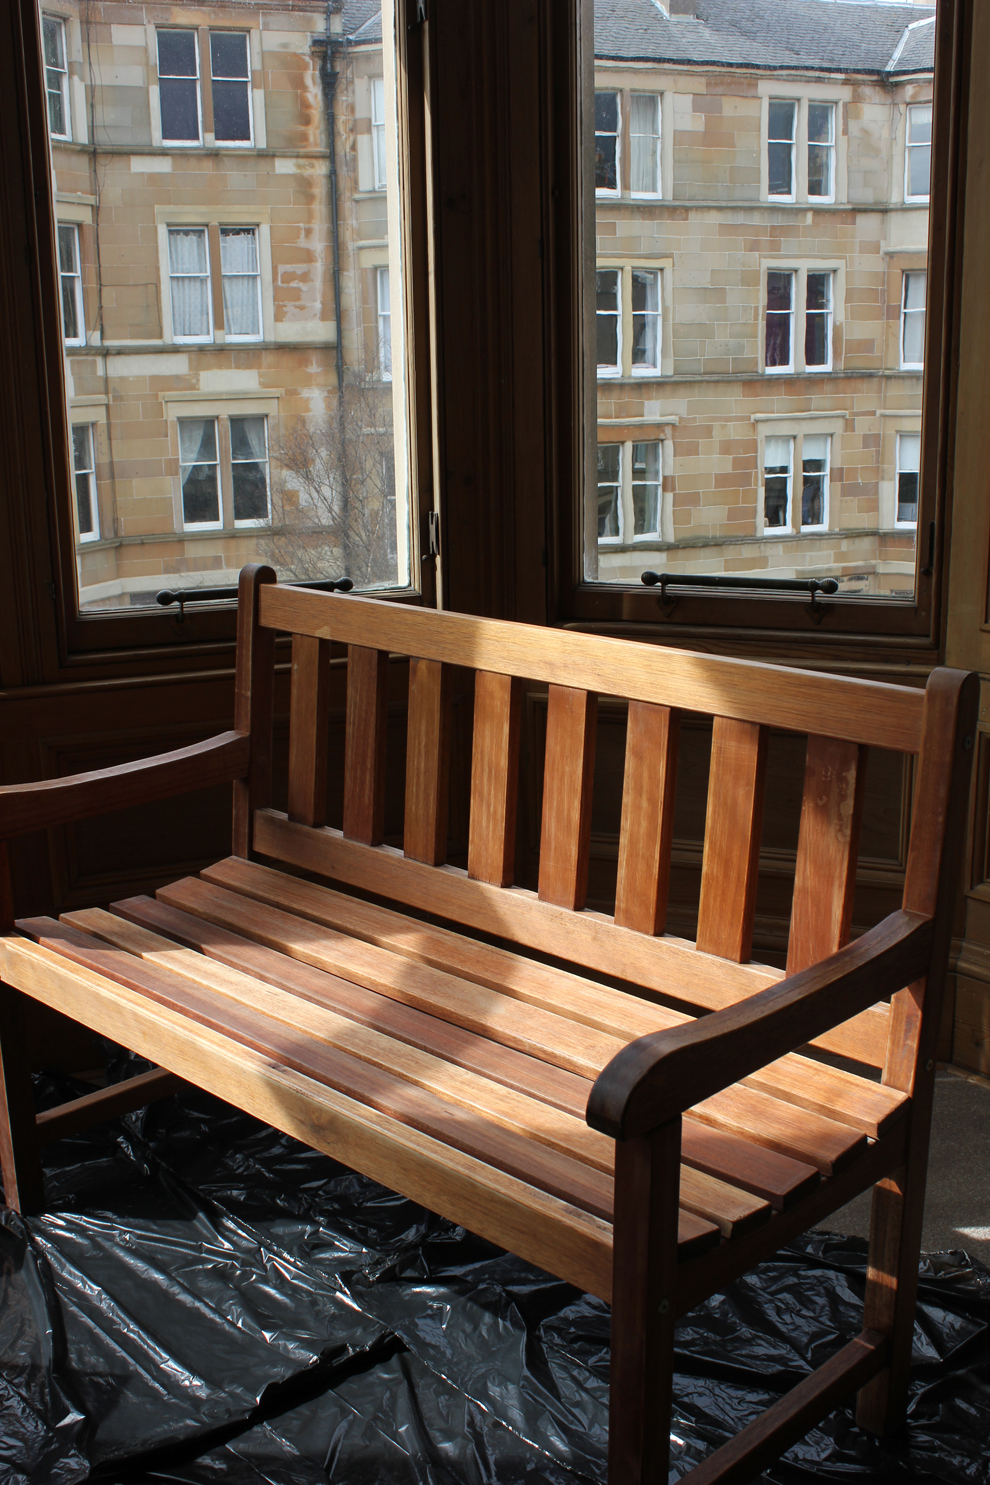 upcycling a bench